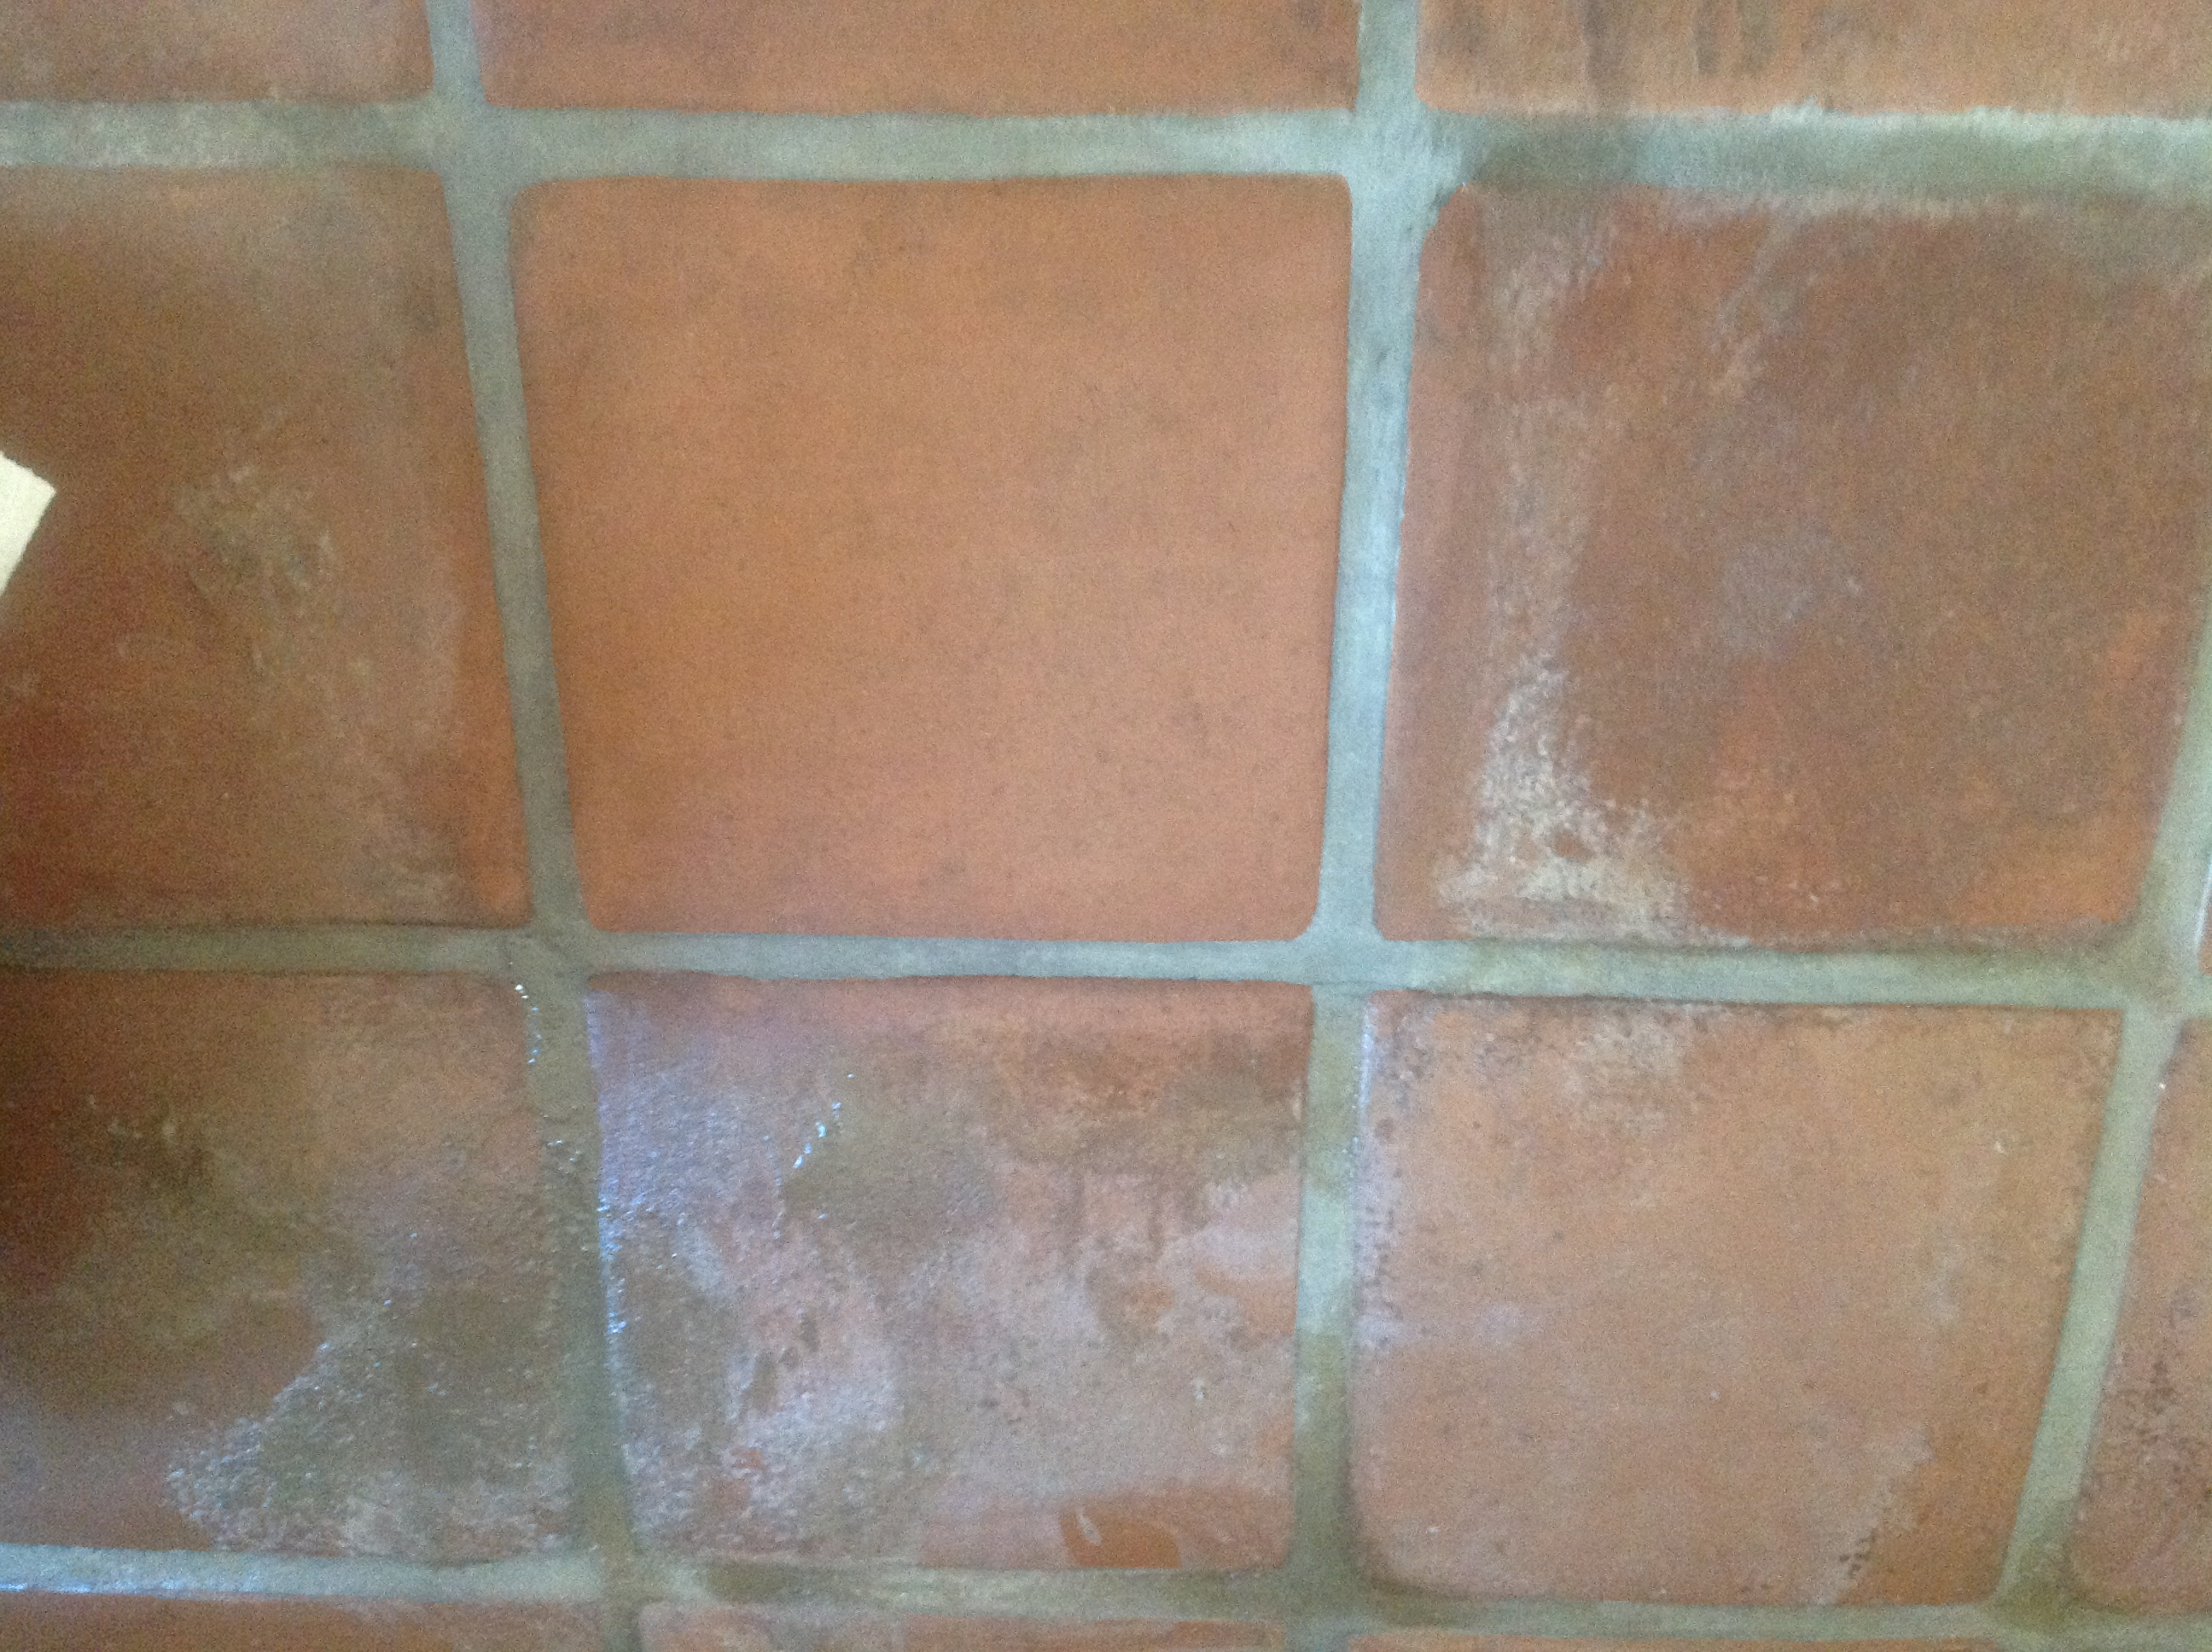 Efflorescence removal tile water damage california tile efflorescence removal tips for saltillo tile terracotta tile flagstone slate pavers and efflorescence prevention advice due to flooding and tile water dailygadgetfo Choice Image